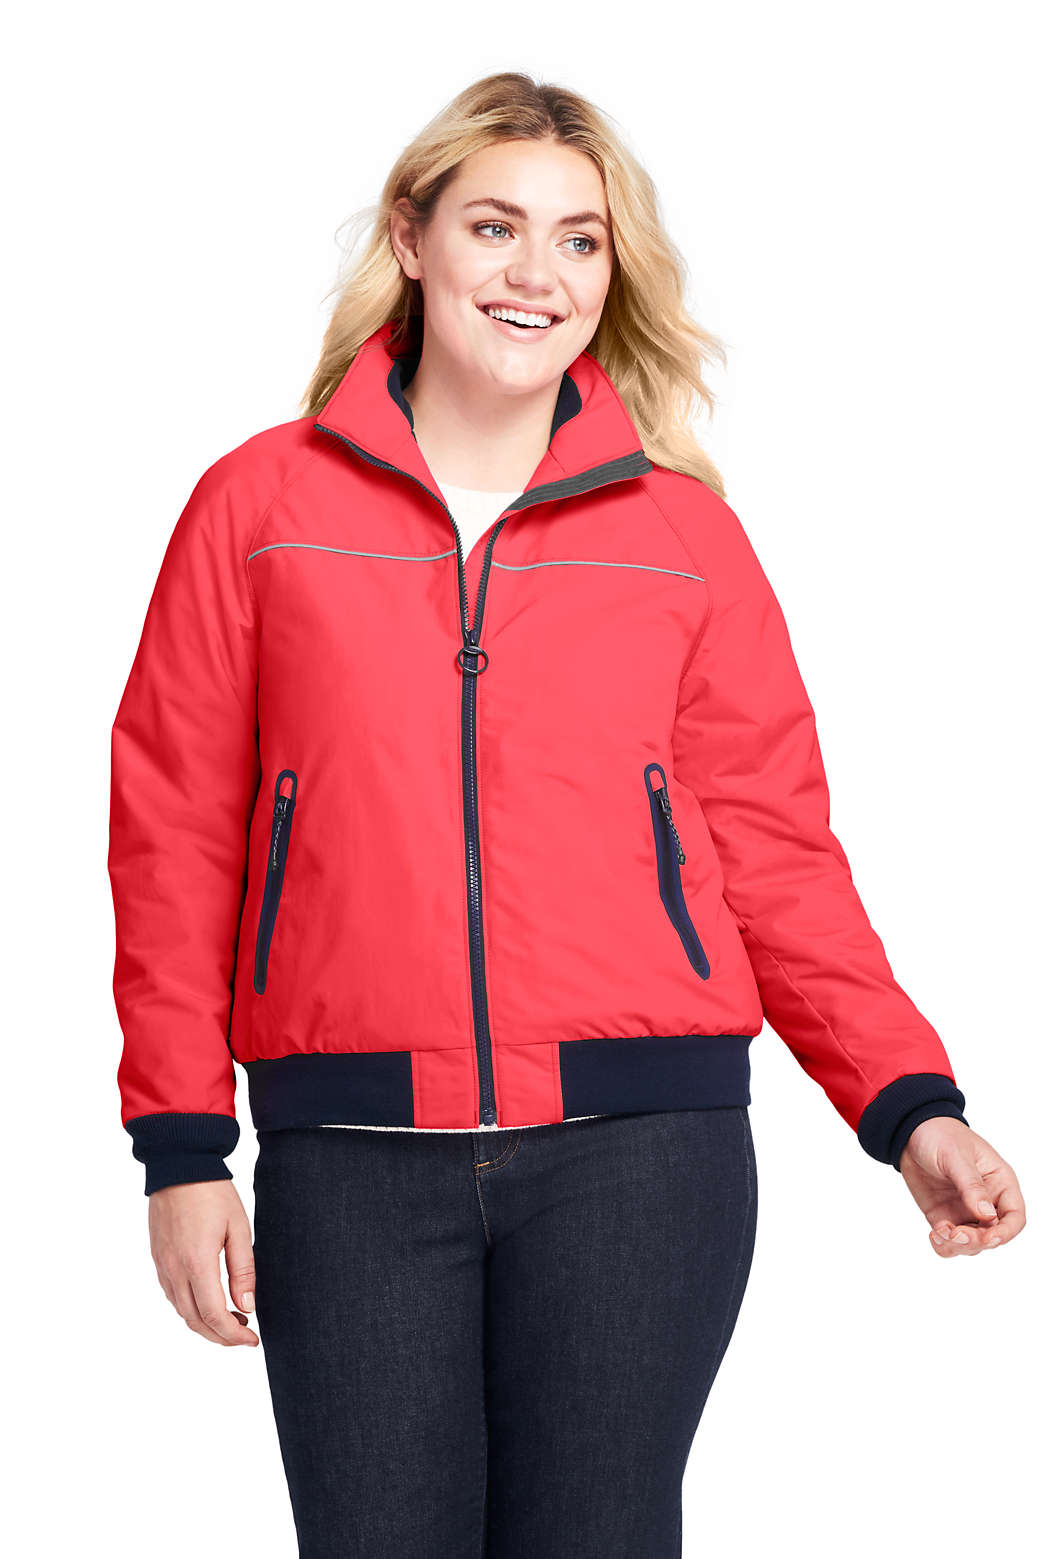 ae97d8f442 Women s Plus Size Squall Jacket from Lands  End